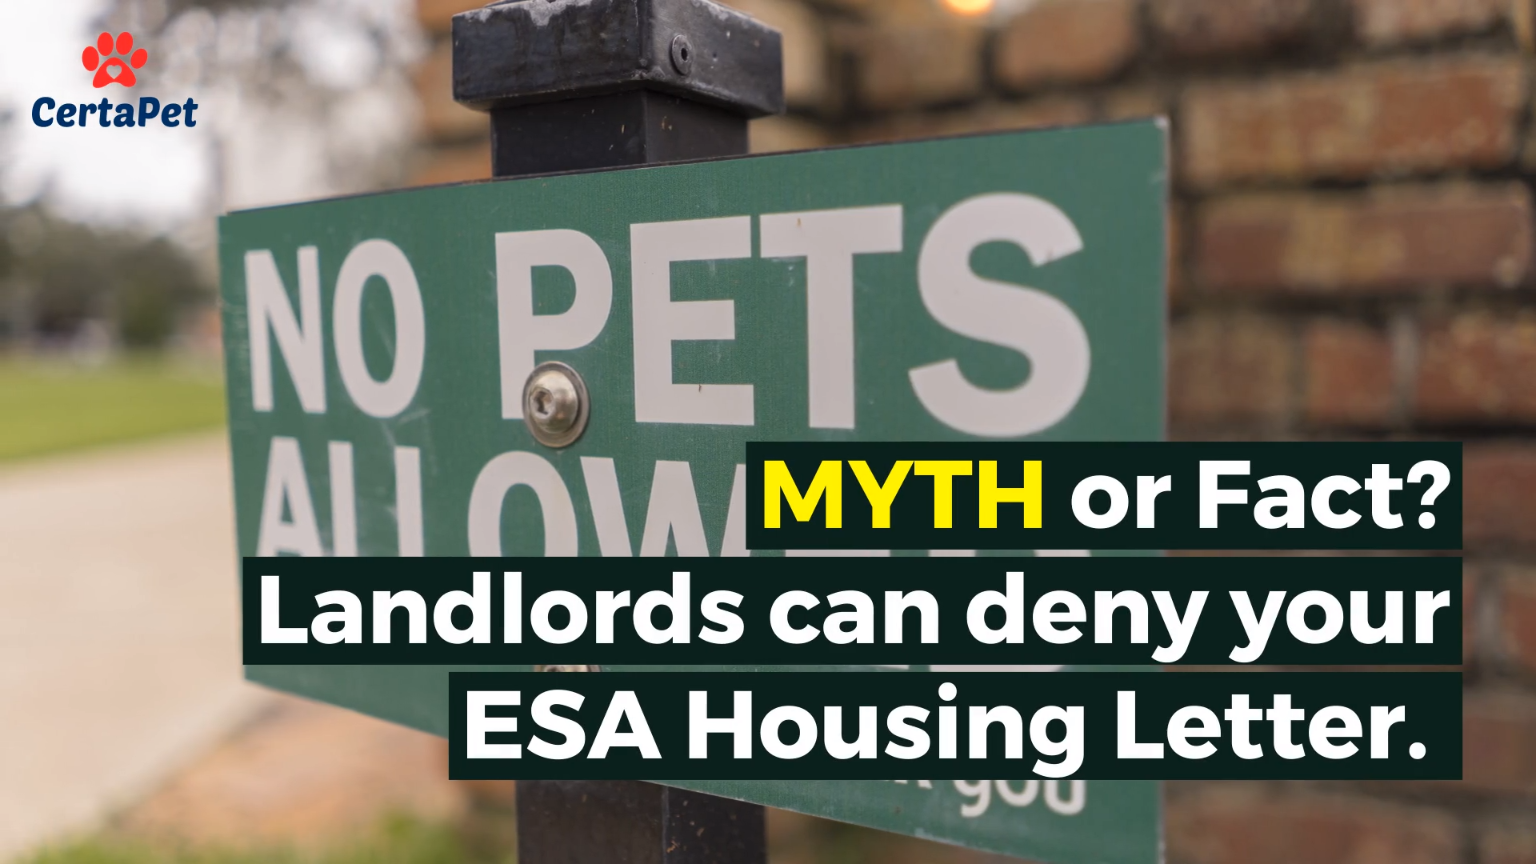 Did You Know Landlords Cannot Deny An Esa Housing Letter The Patient Is Protected By The Fair Housing Act Video Emotional Support Animal Emotional Support Certapet